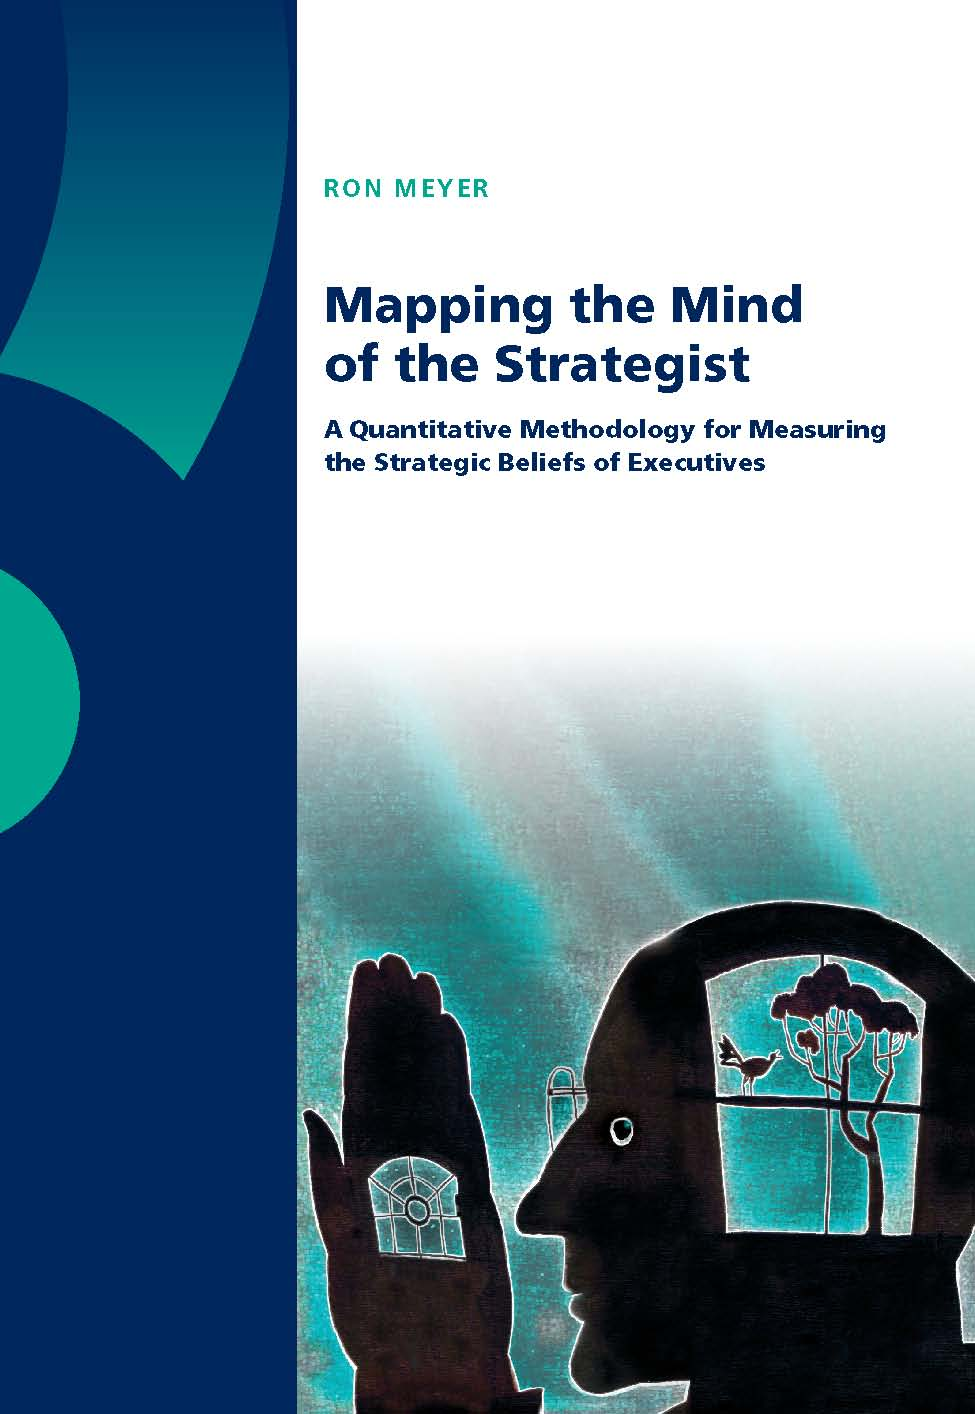 Mapping the Mind of the Strategist: A Quantitative Methodology for Measuring the Strategic Beliefs of Executives